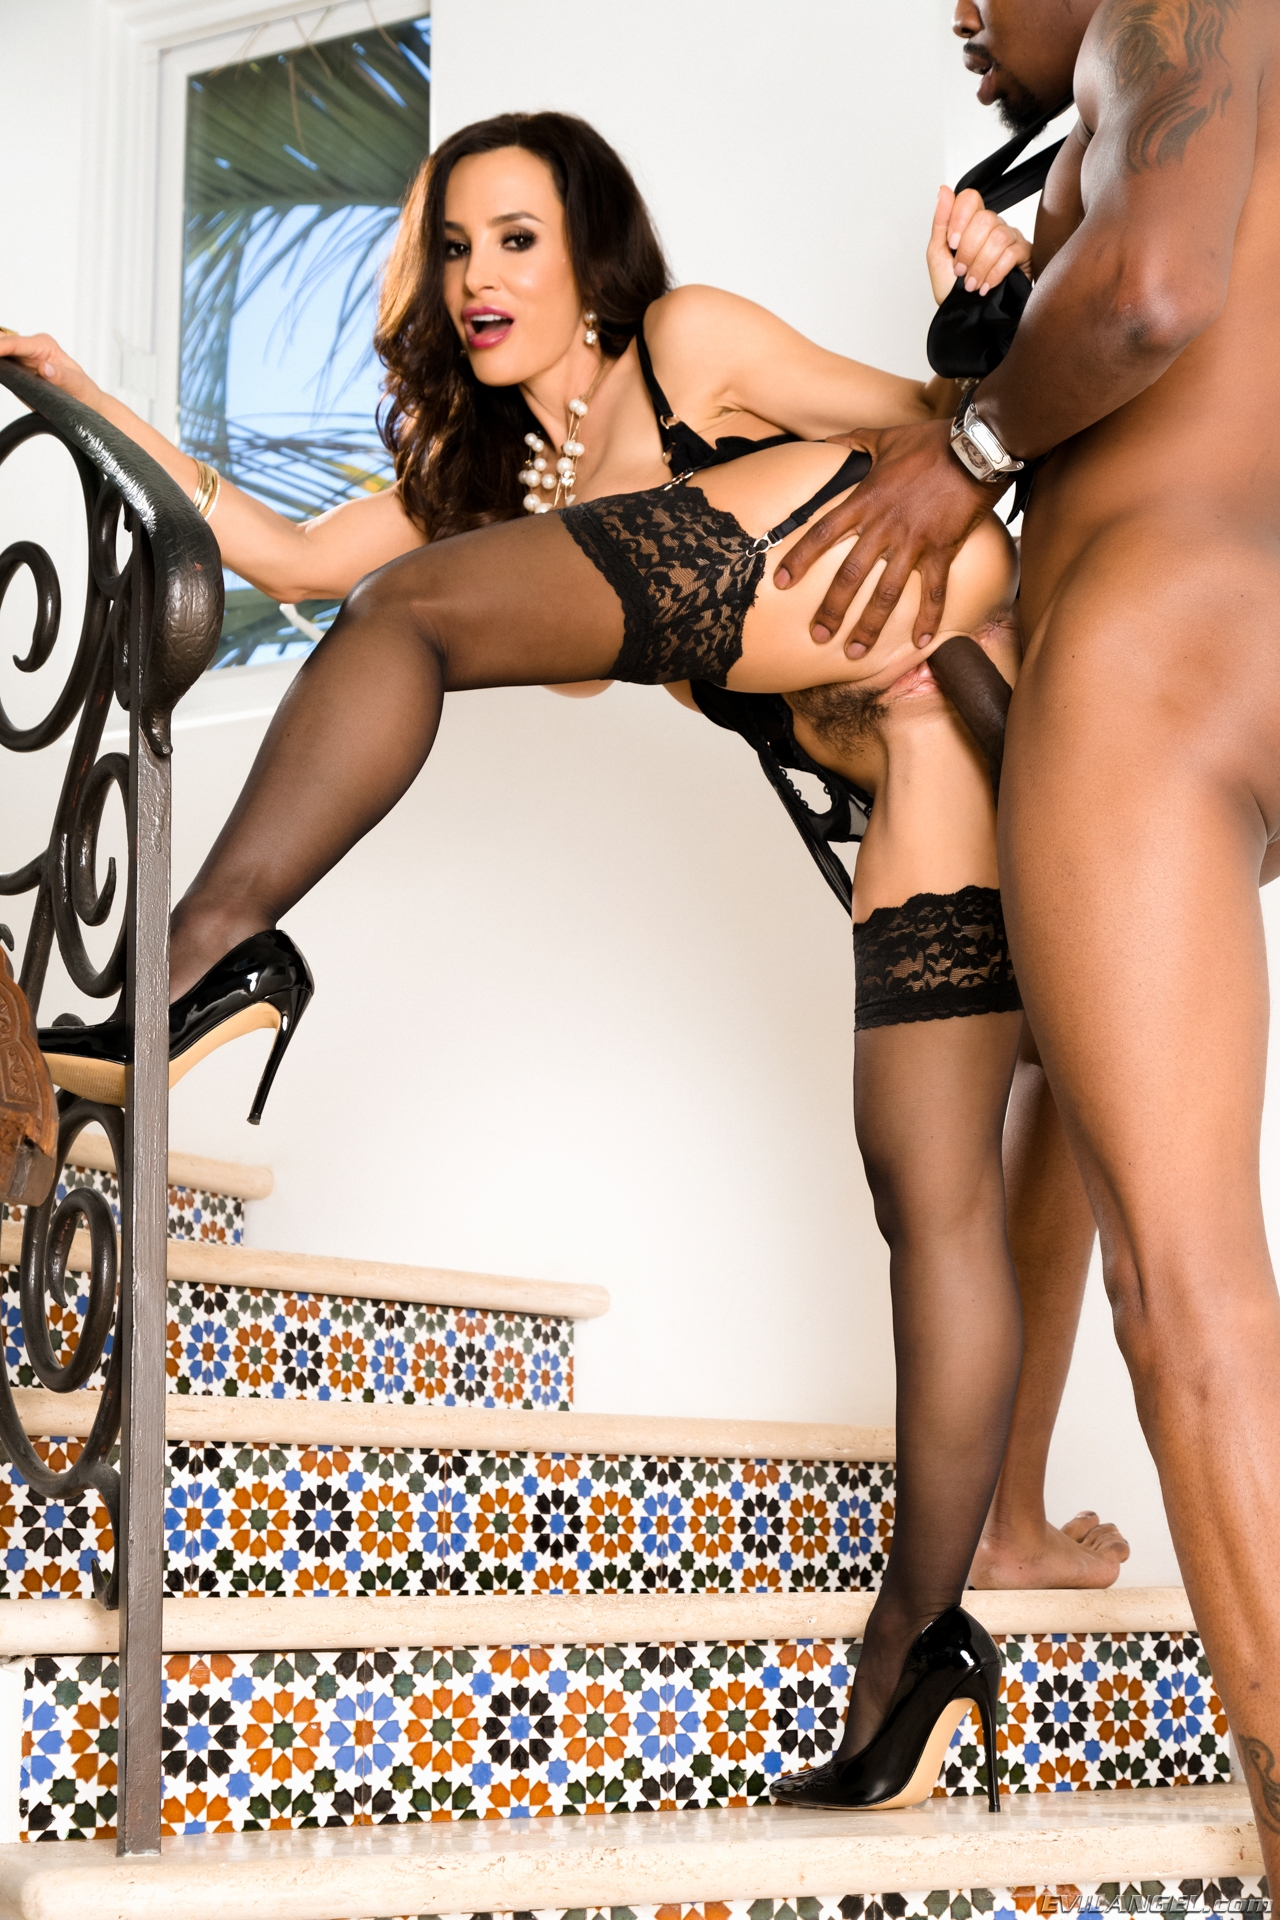 glamour milf lisa ann reappearance and comeback on evilangel black #10